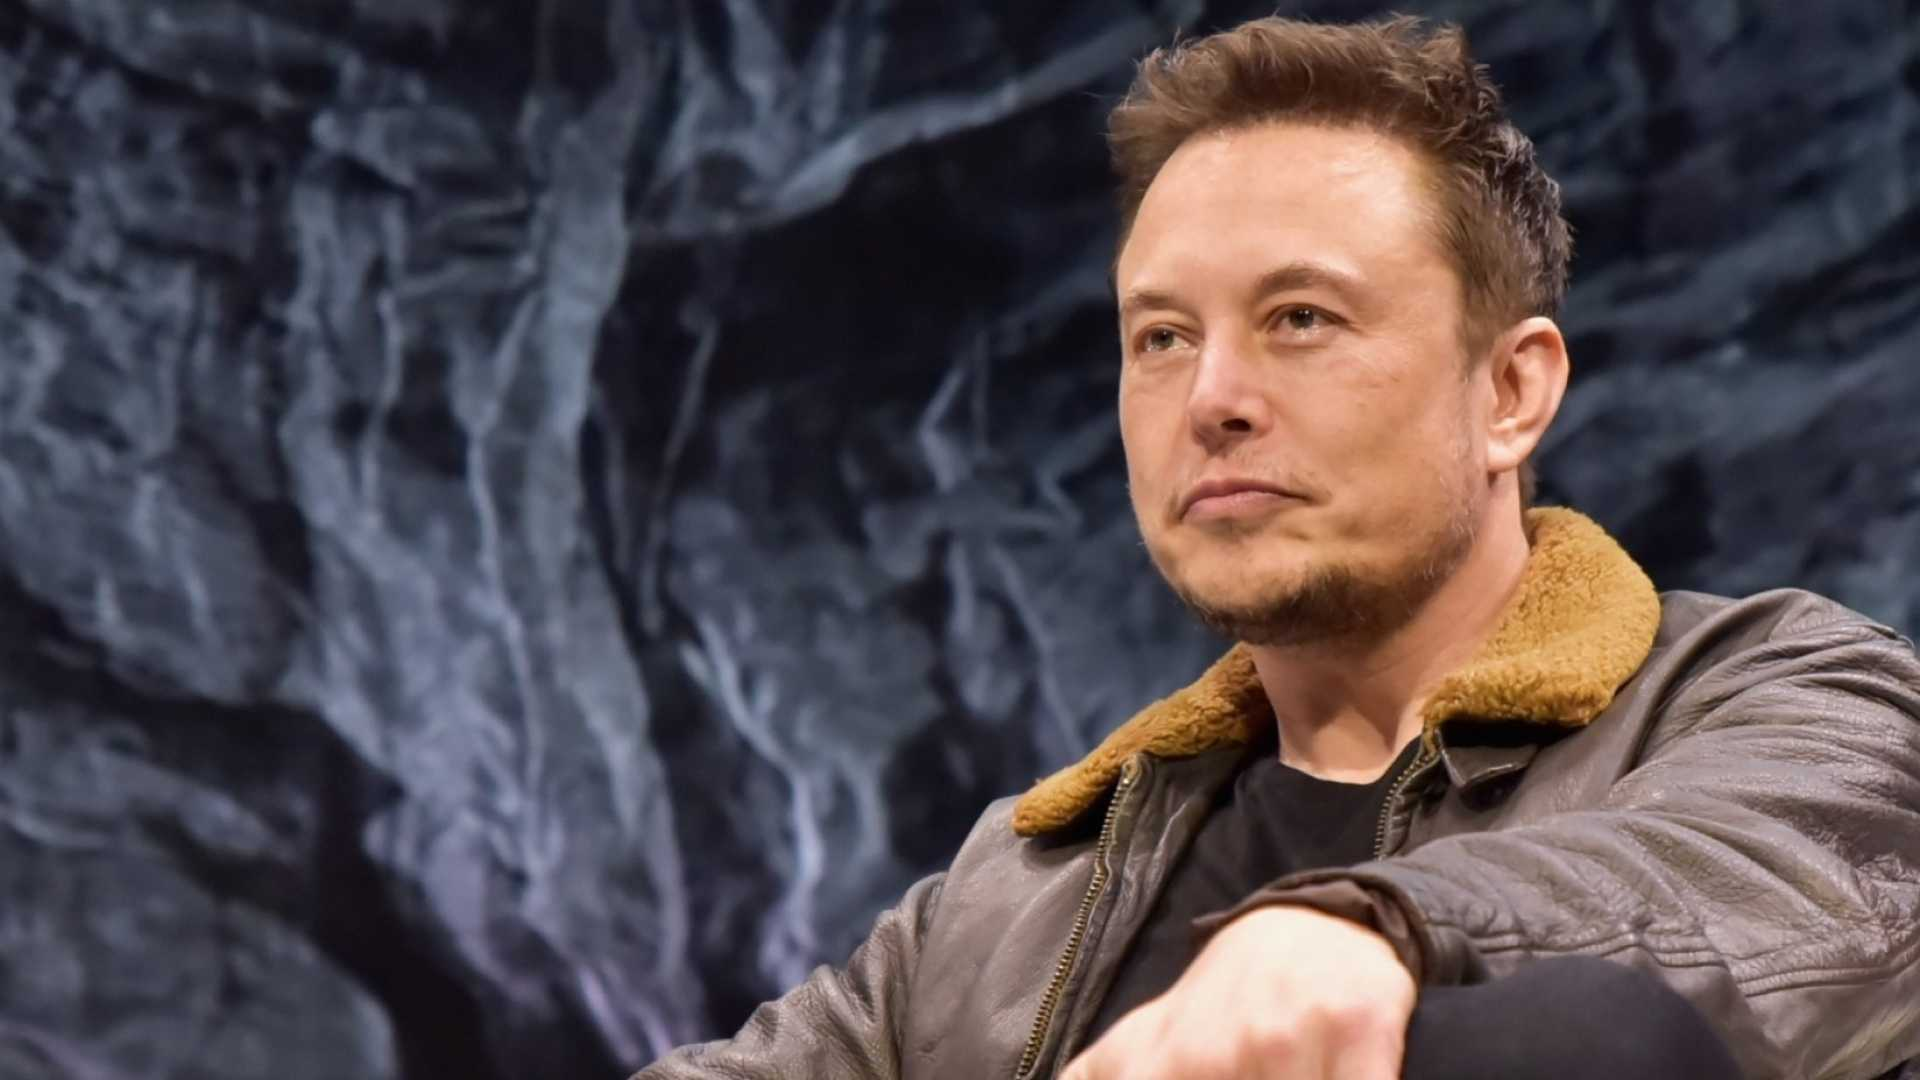 Elon Musk Just Stunned Facebook, Deleting The SpaceX and Tesla Pages--Here's Why That's Awesome